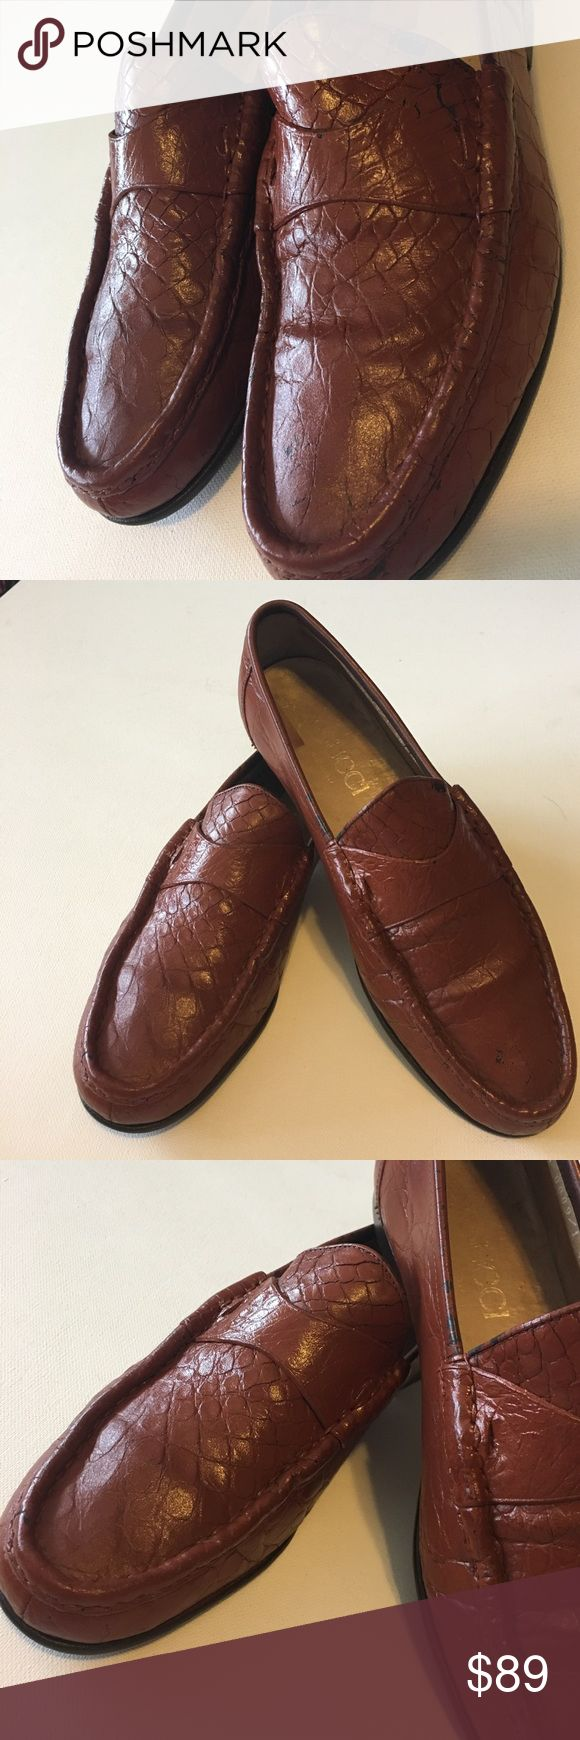 """Authentic Gucci Men's Loafers EU 40.5 Stylish men's loafers. Overall in good condition, lots of life left in these shoes. Please look at all pics, examine the pictures. Size is 40 1/2 inside shoe, bottom says 9/10 jumbo. US size 6, measures 10.75"""" long. I did a lot of research on authenticity. The eight digit style code should be indicated next to the size inside the shoe, (it is) also the Gucci emblem should be on the bottom of the shoe next to the sizing and it should state made in Italy…"""